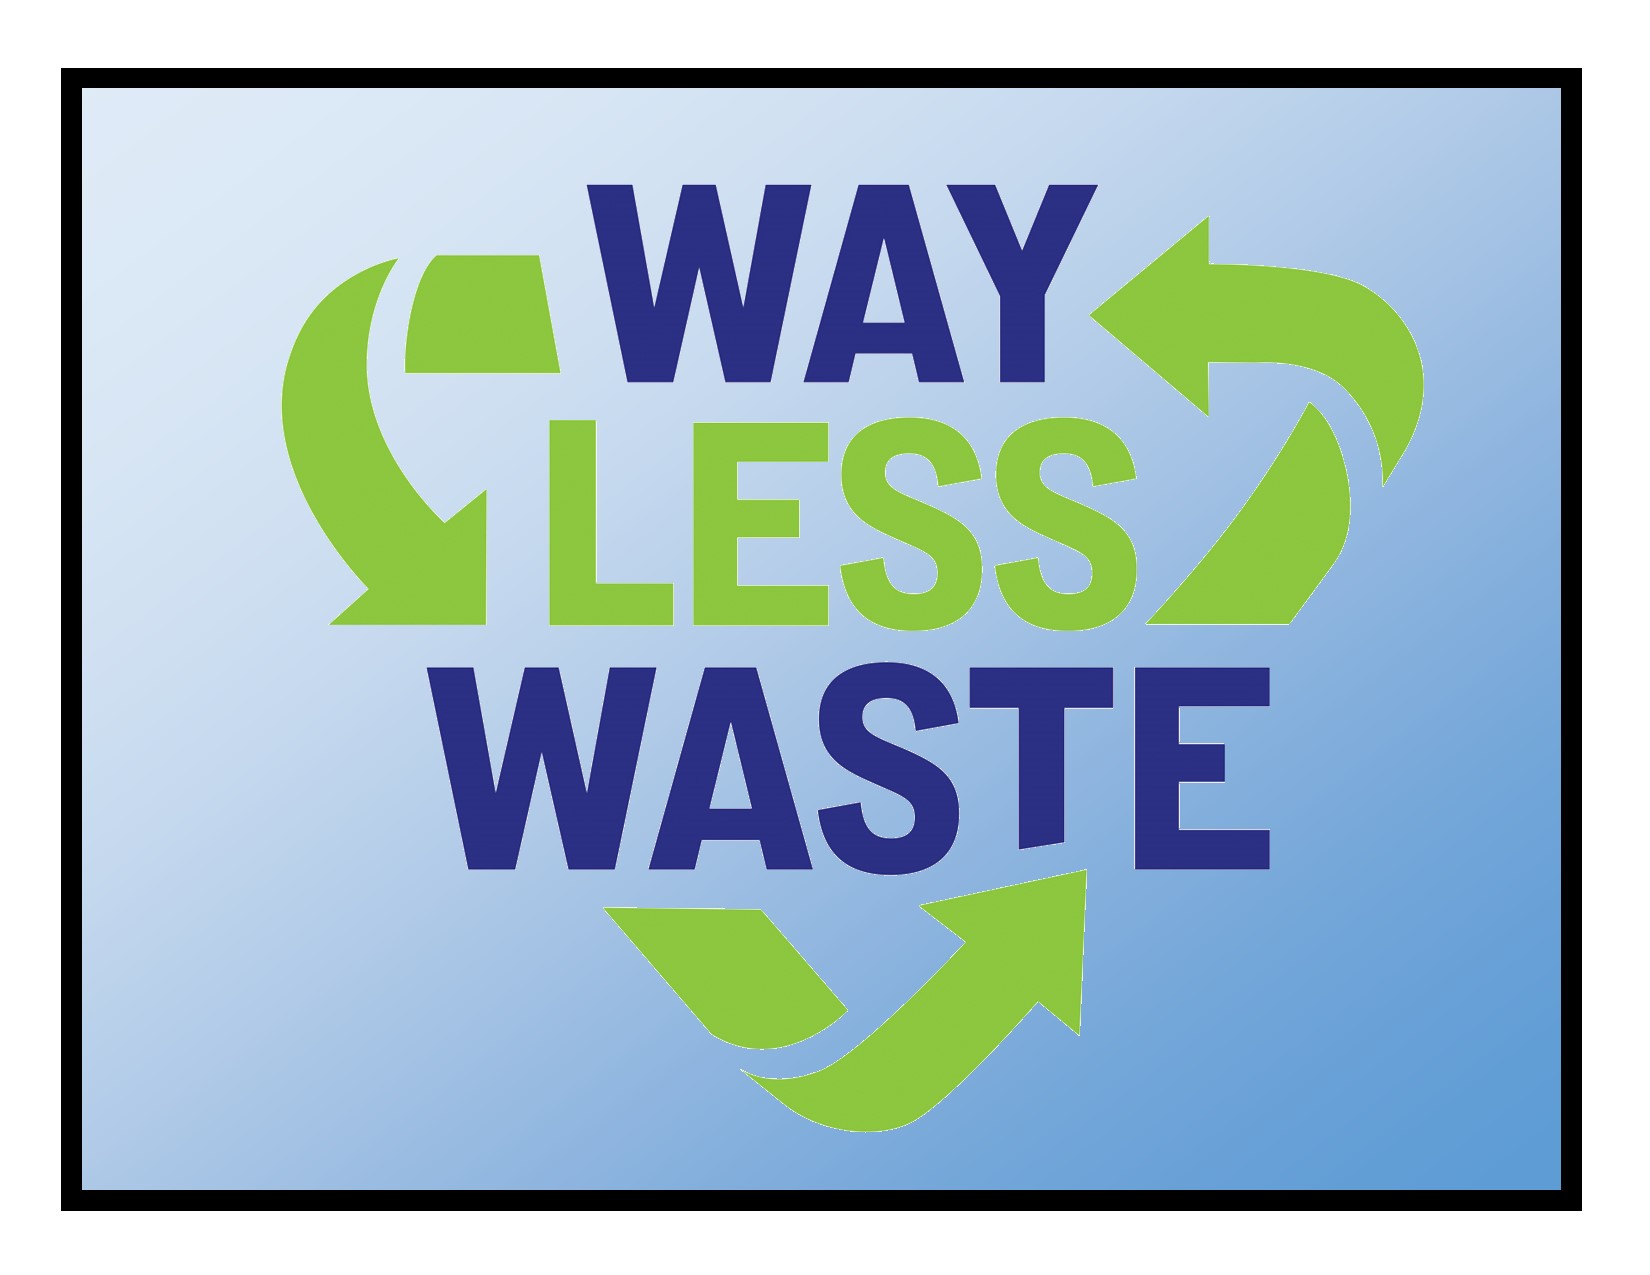 Way Less Waste